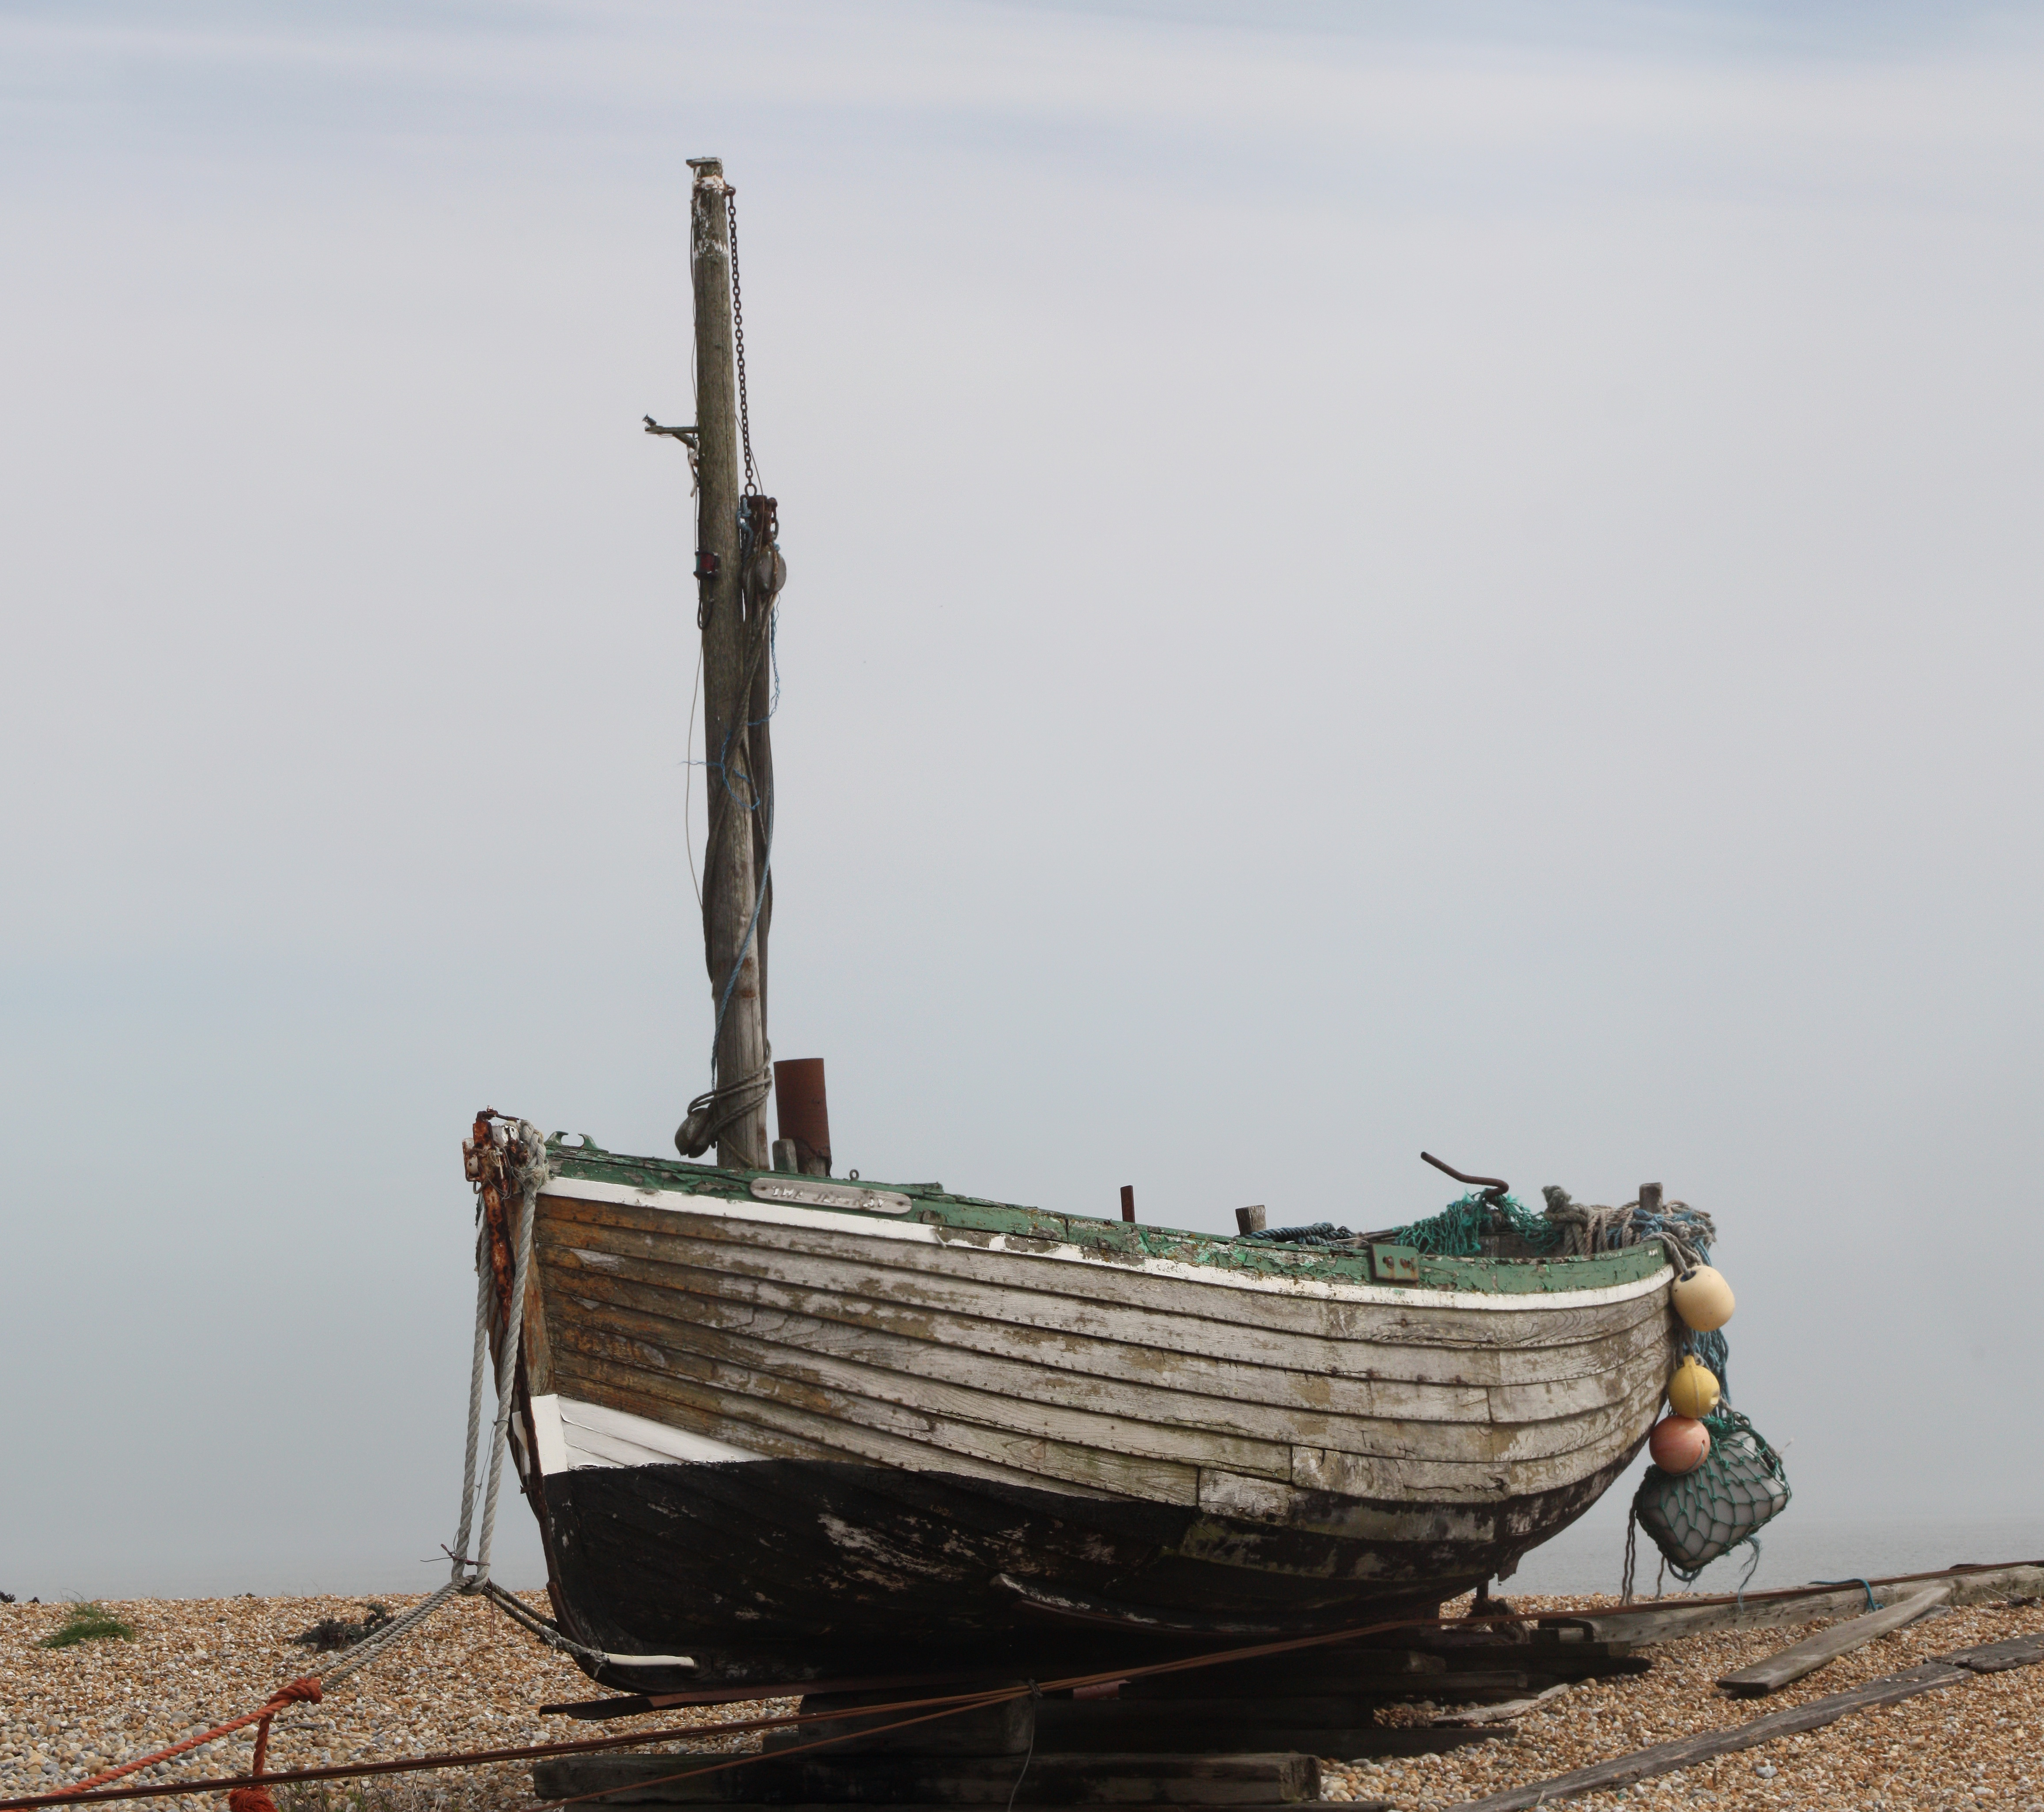 File:Old boat at Dungeness.jpg - Wikimedia Commons